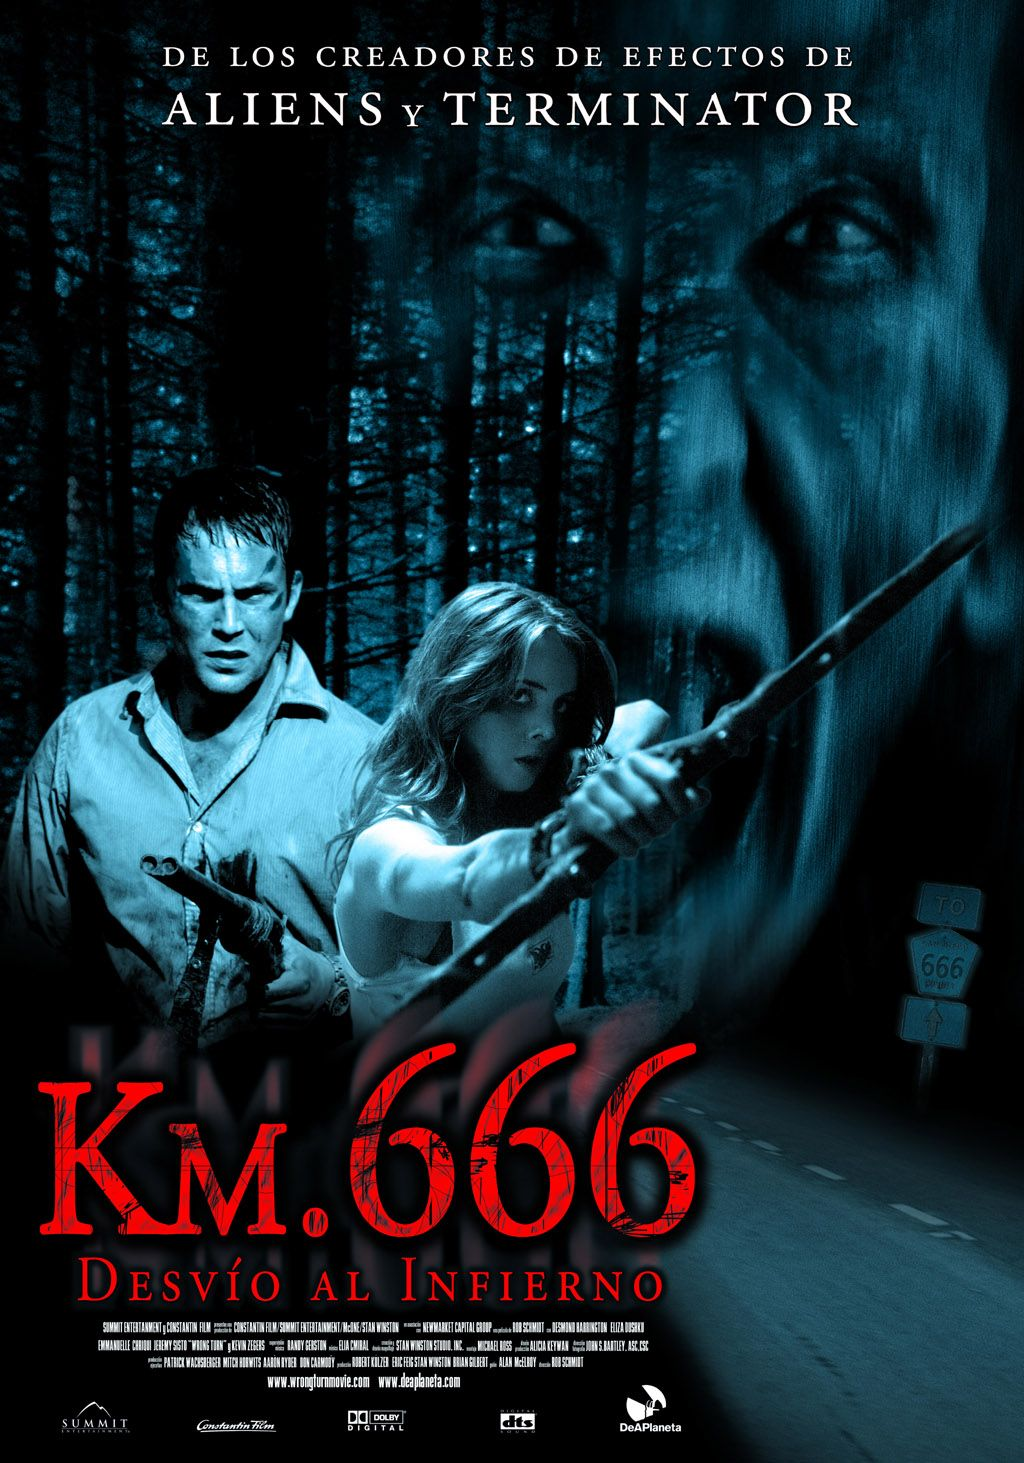 Km666 Full Movies Online Free Free Movies Online Full Movies Online